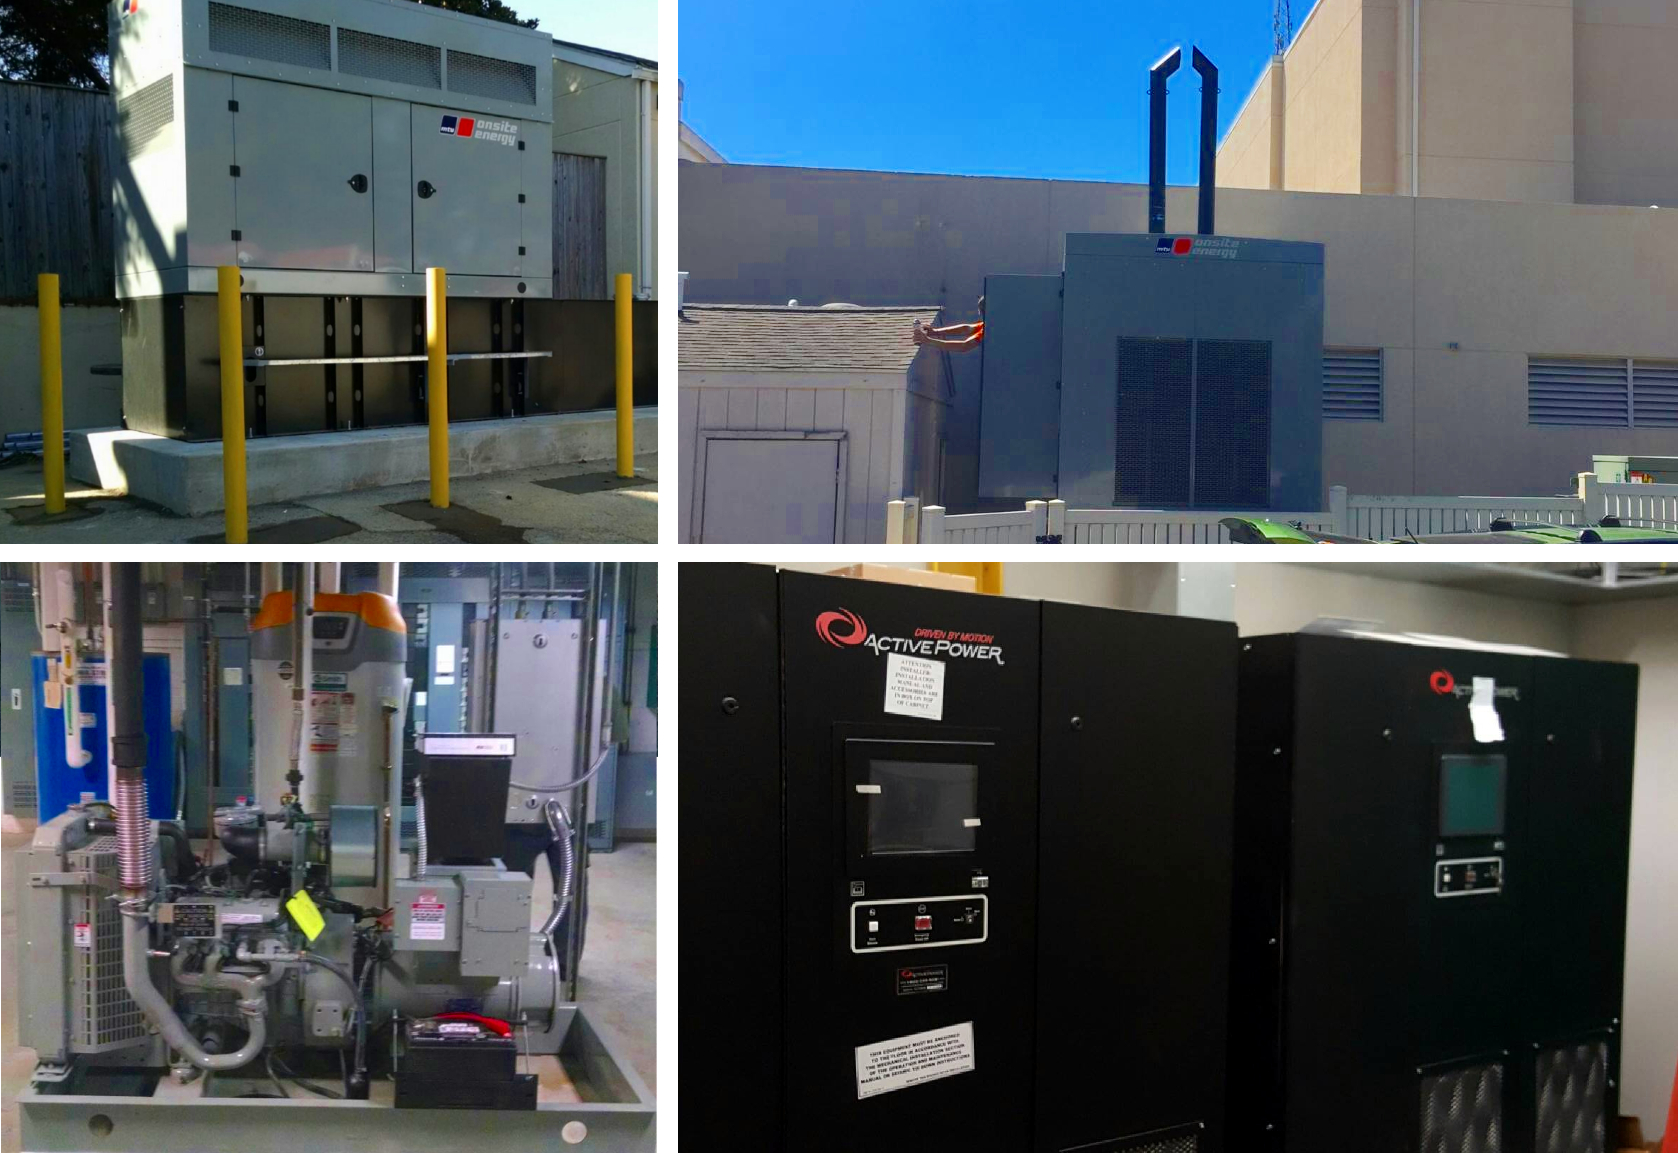 Backup Power Commercial Generator Company for repair, maintenance, service, installation in Annapolis, Glen Burnie, Arnold, Severna Park, Pasadena